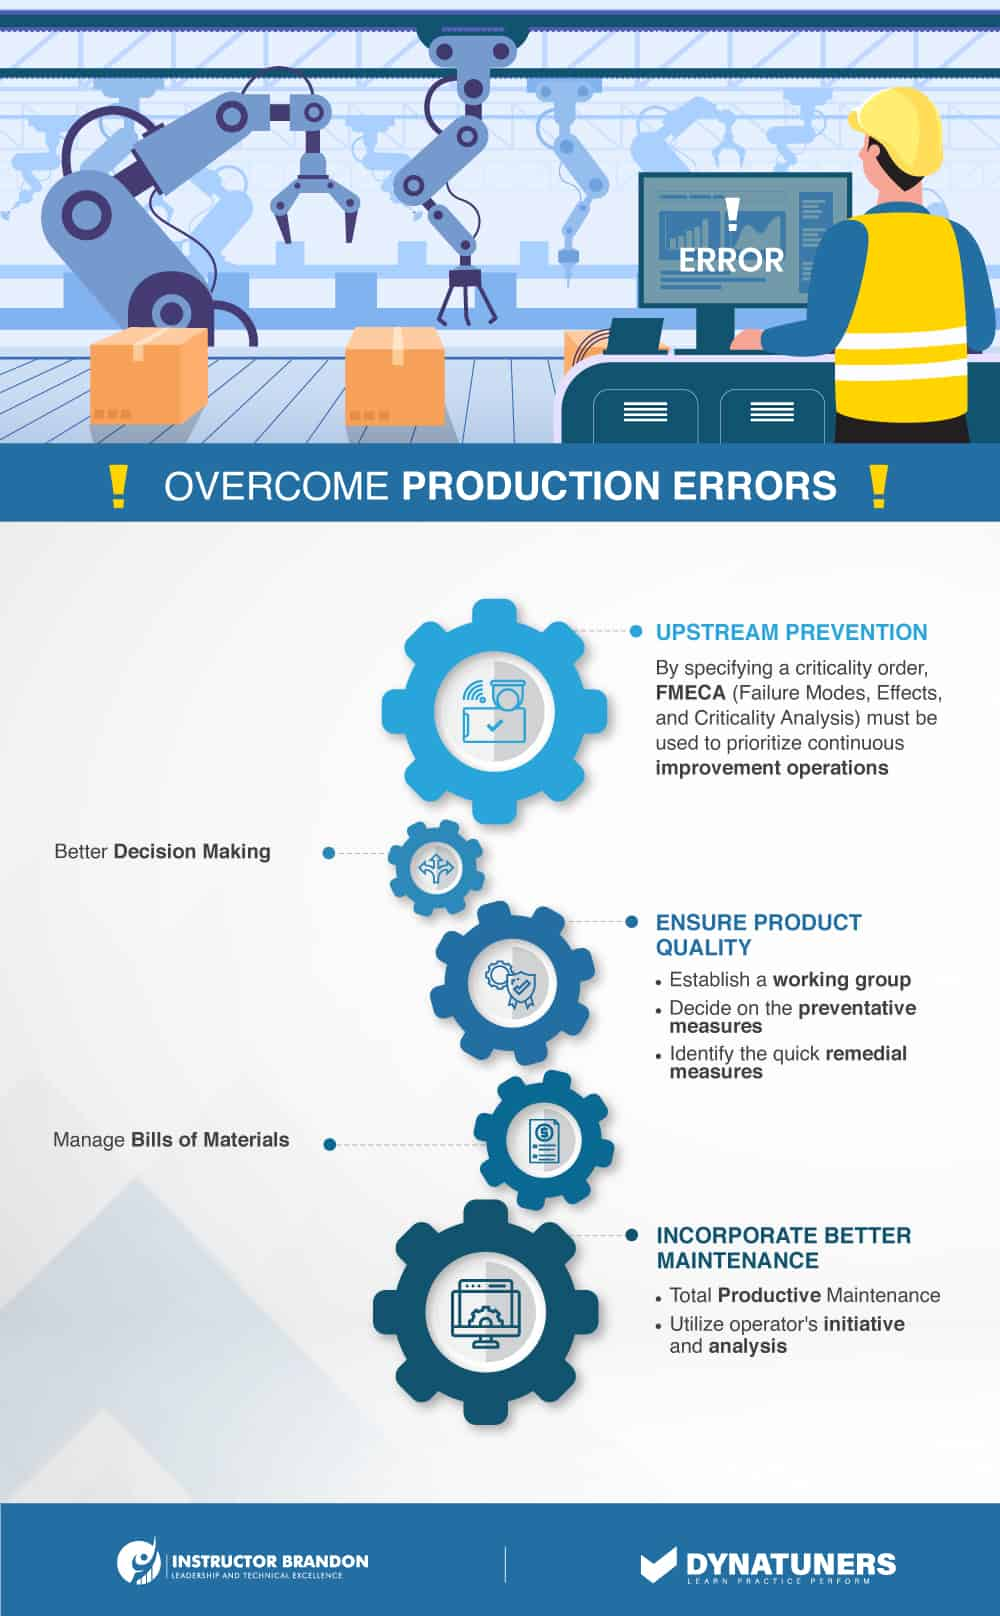 overcome production errors with bills of materials